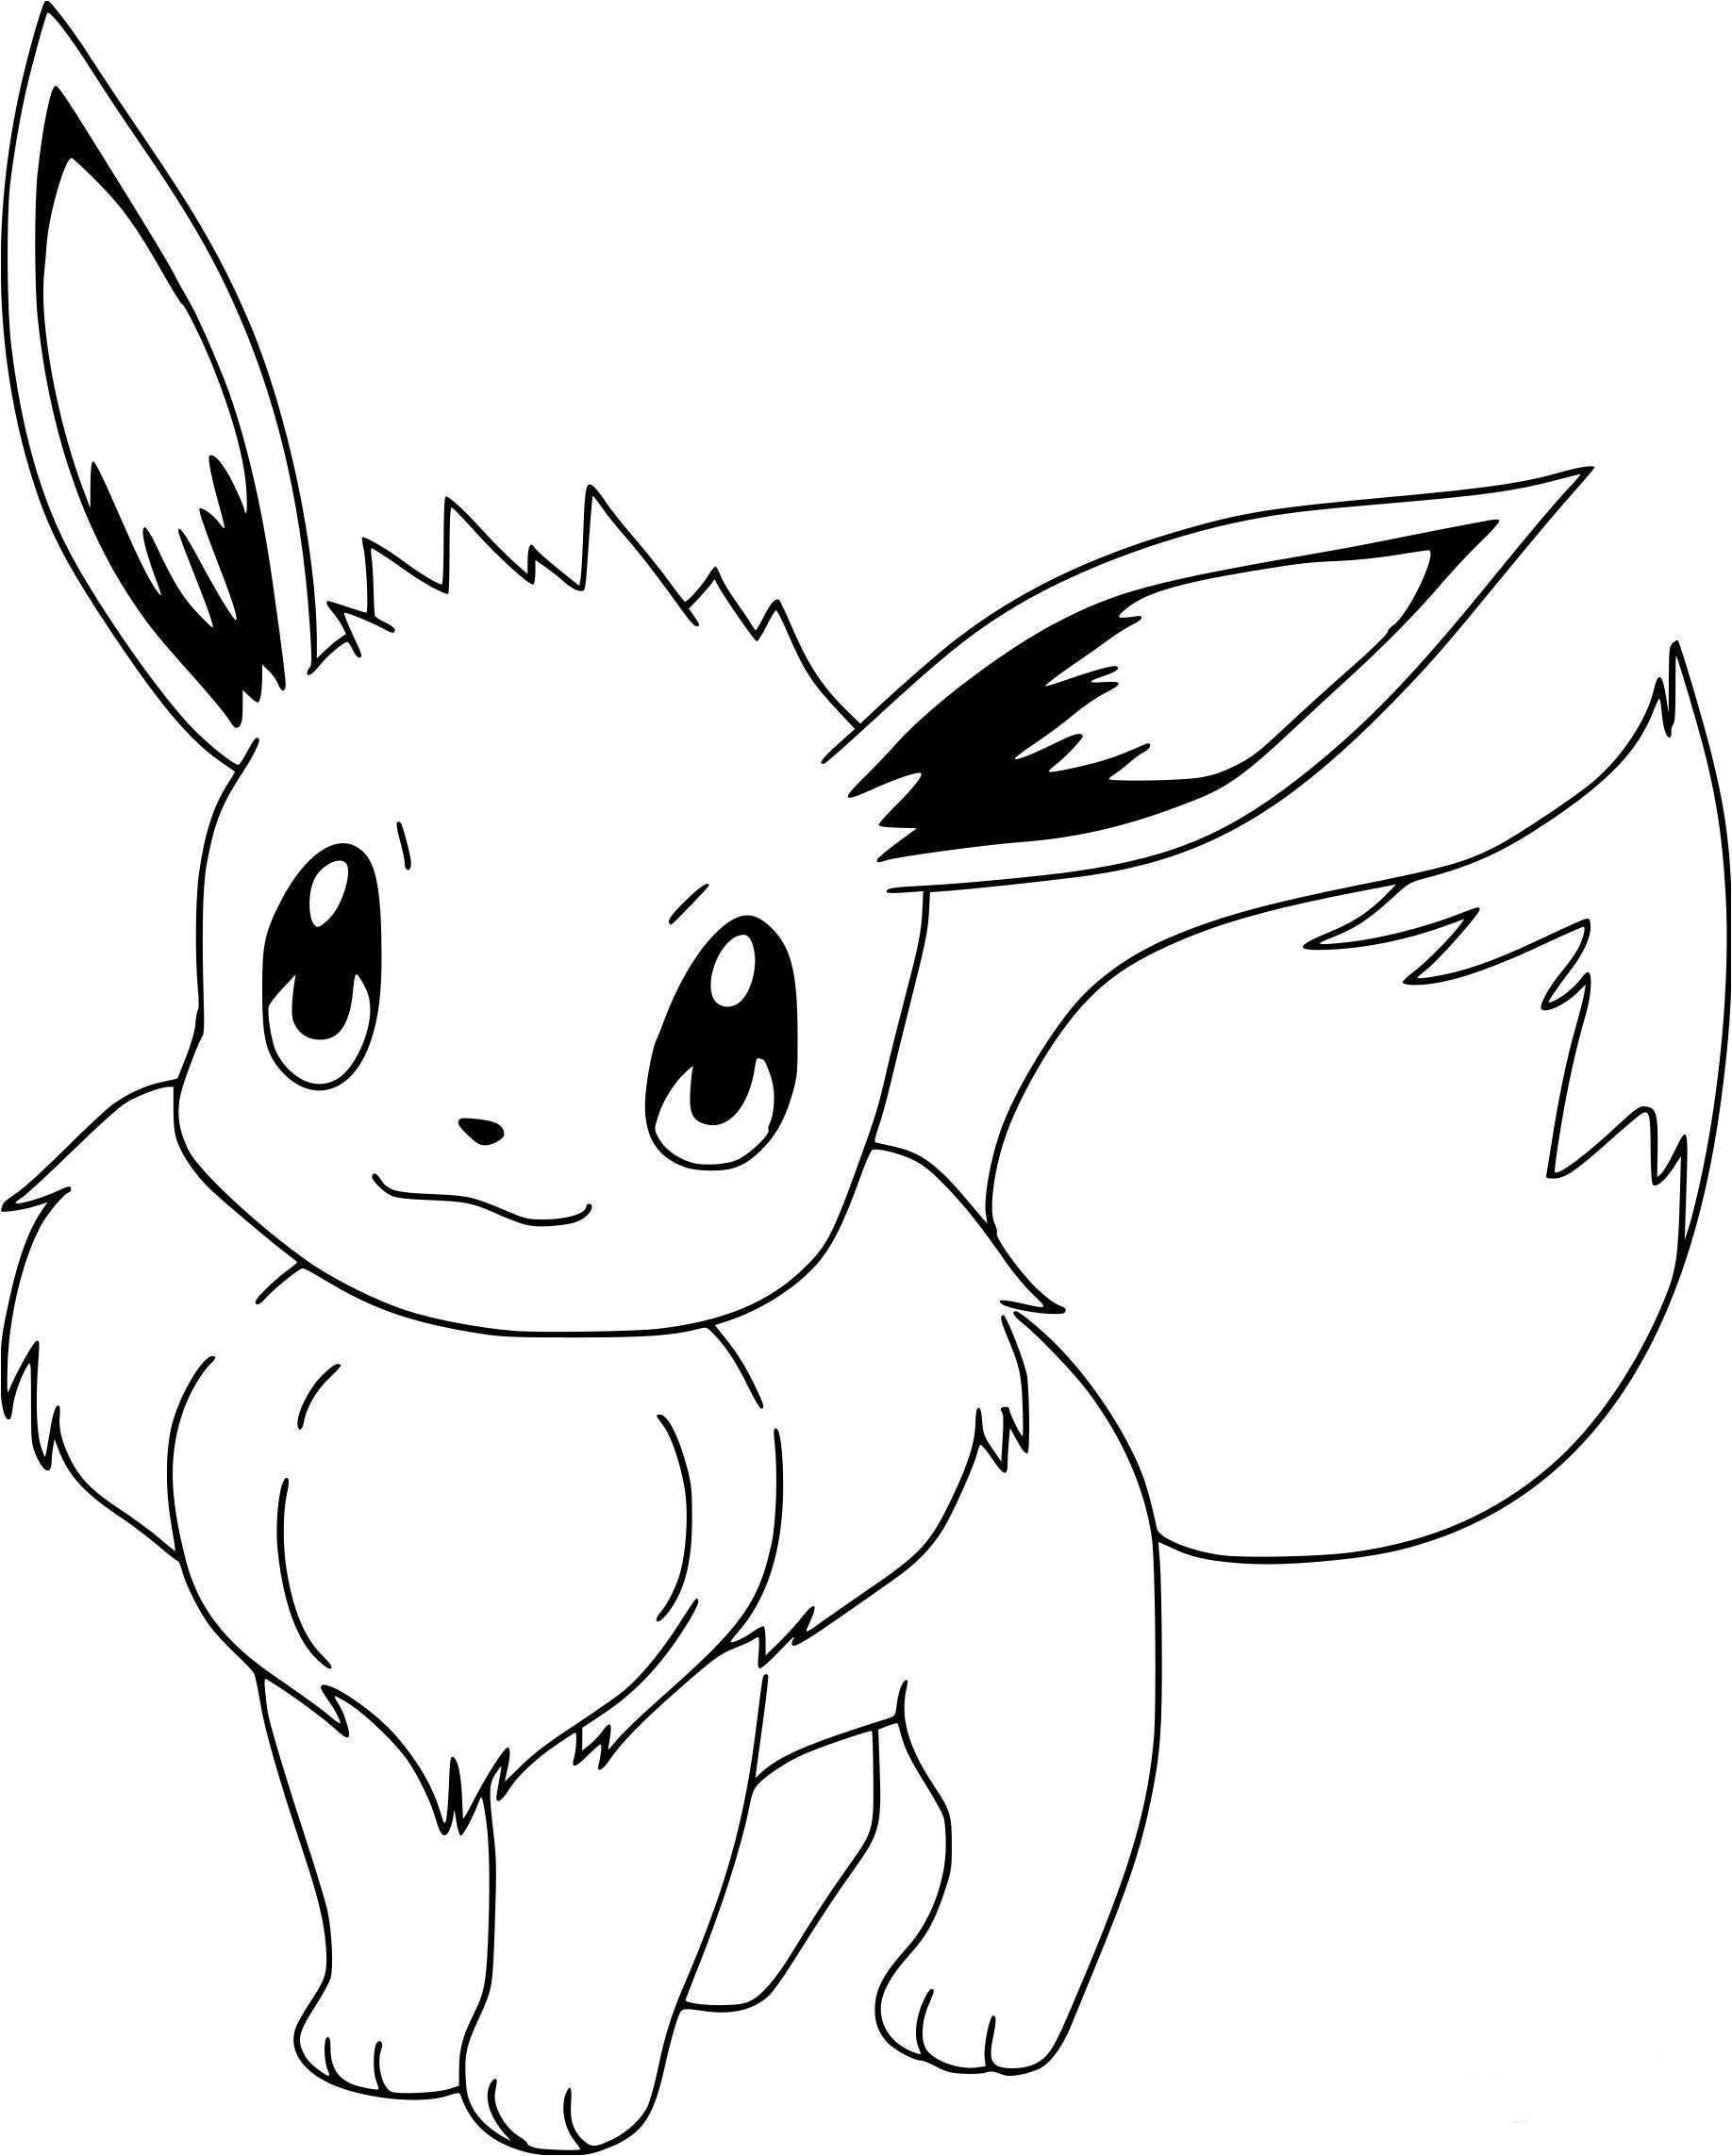 Coloriage De Pokémon à Imprimer Lovely Coloriage Pokemon Lougaroc Of Coloriage De Pokémon à Imprimer